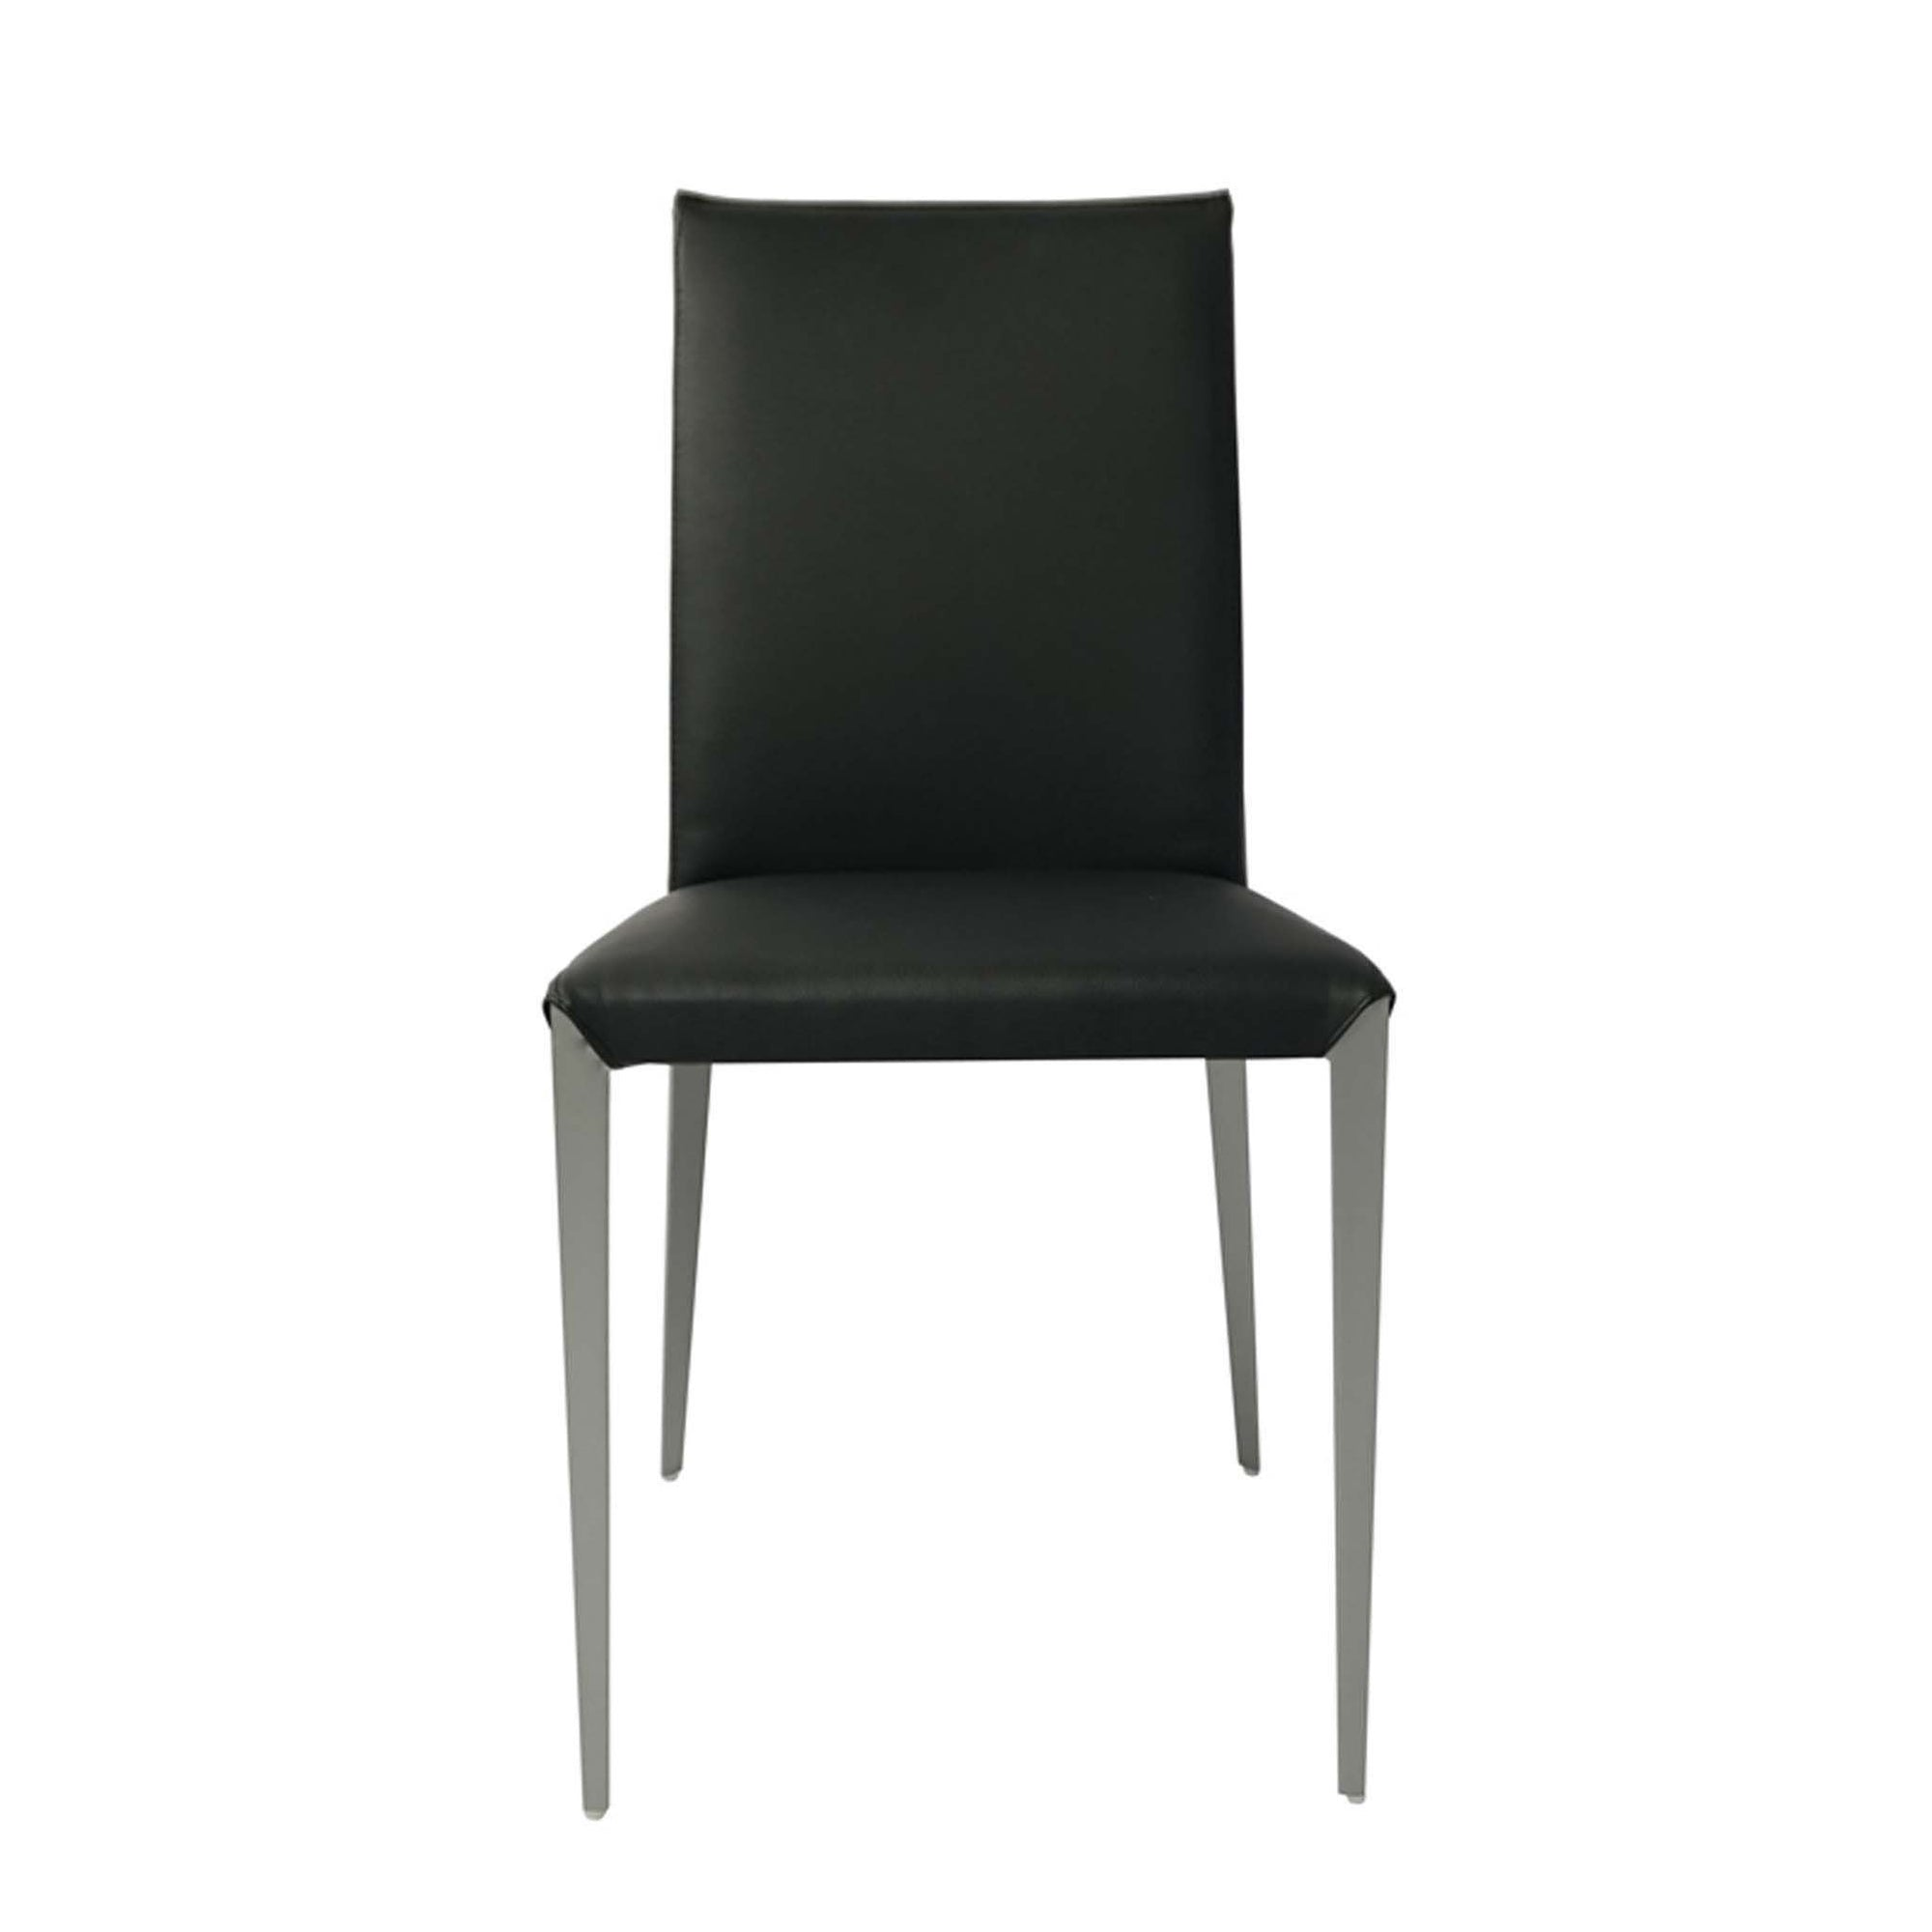 Bellini-Air Dining Chairs-Dining Chairs-MODTEMPO